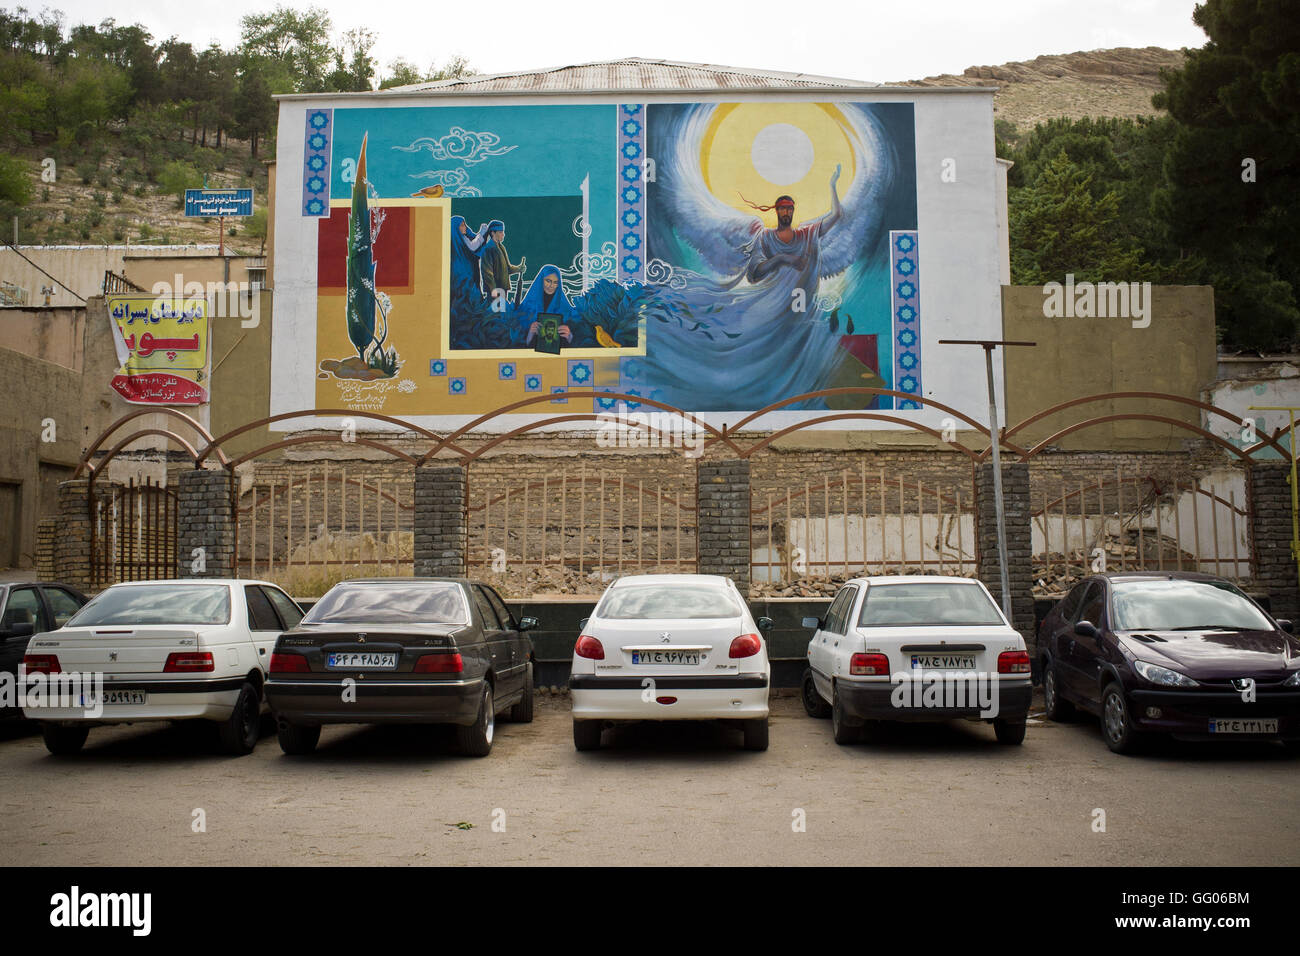 Khorramabad, Lorestan, Iran. 27th May, 2013. File Image - Cars parked in front of a mural of the martyrs of the - Stock Image